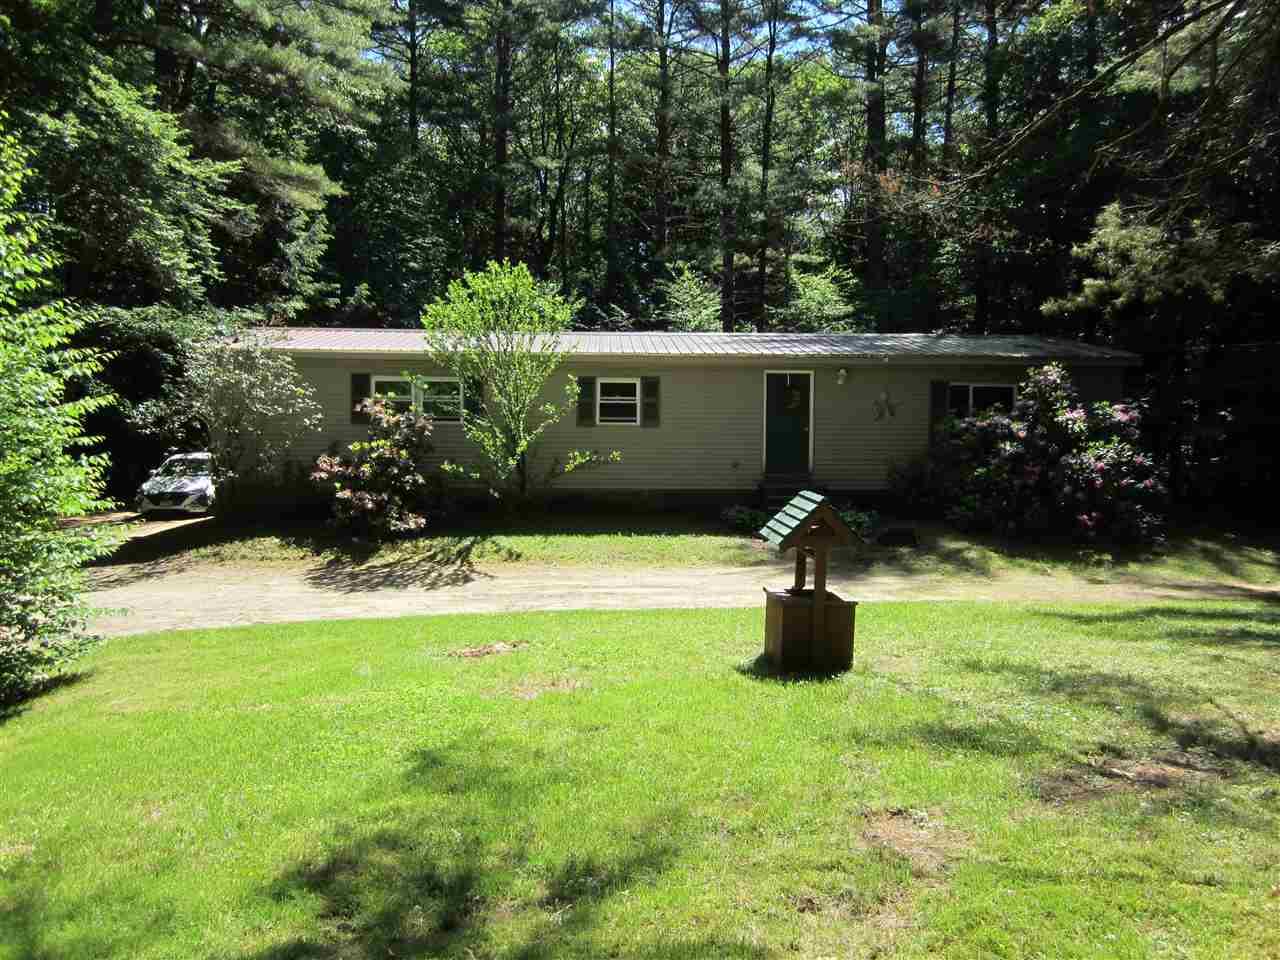 MLS 4760107: 292 Marcy Hill Road, Swanzey NH